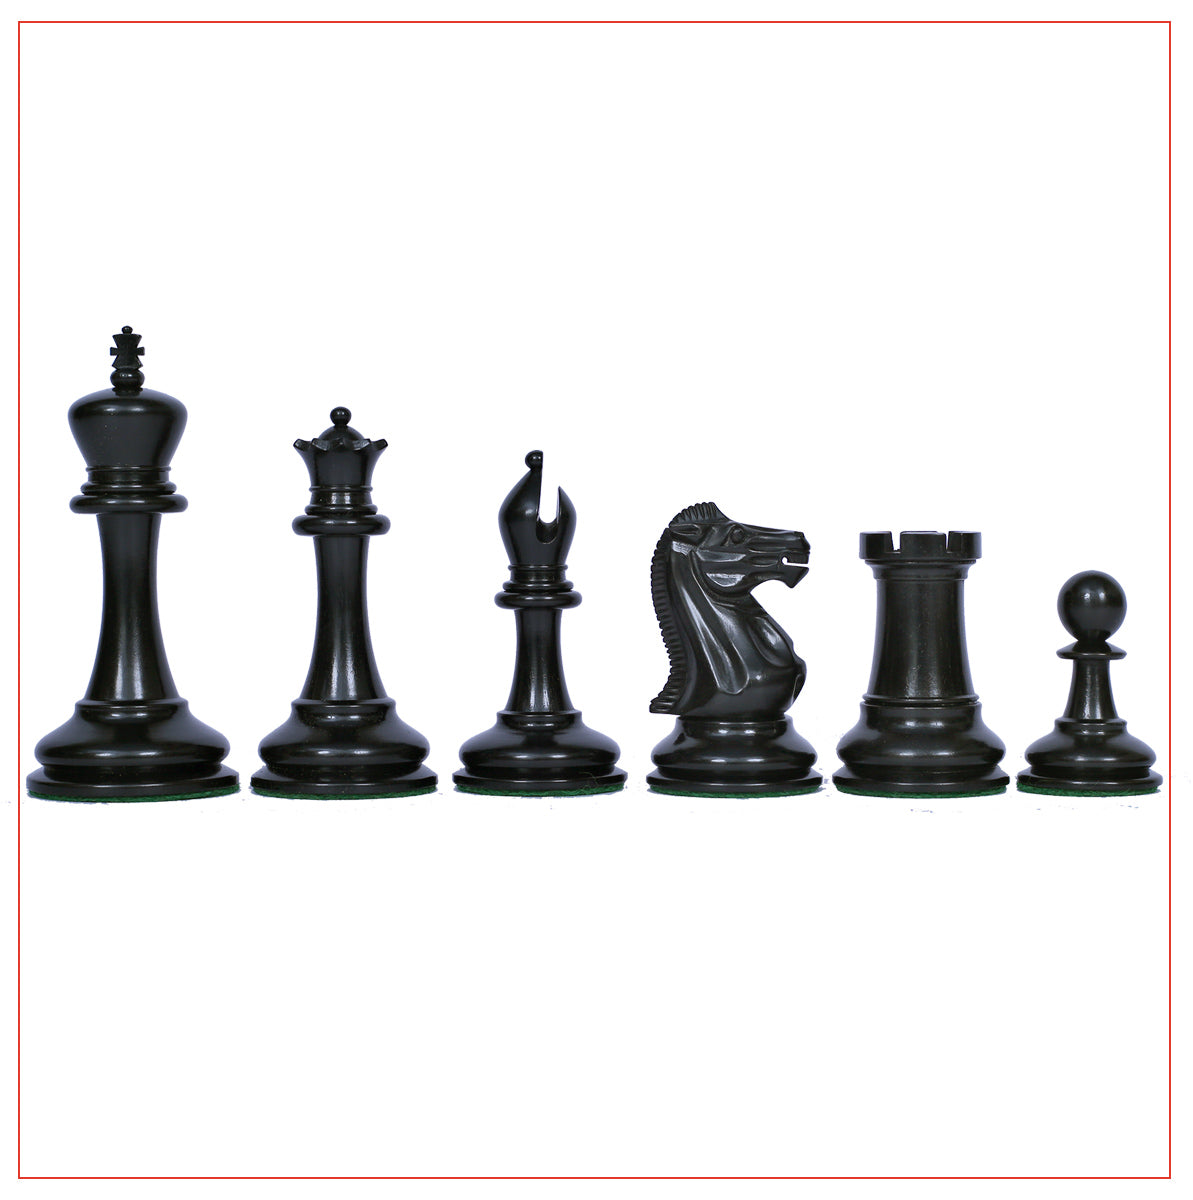 "Championship Series 3.5"" Ebony Wood Staunton Chess Pieces"